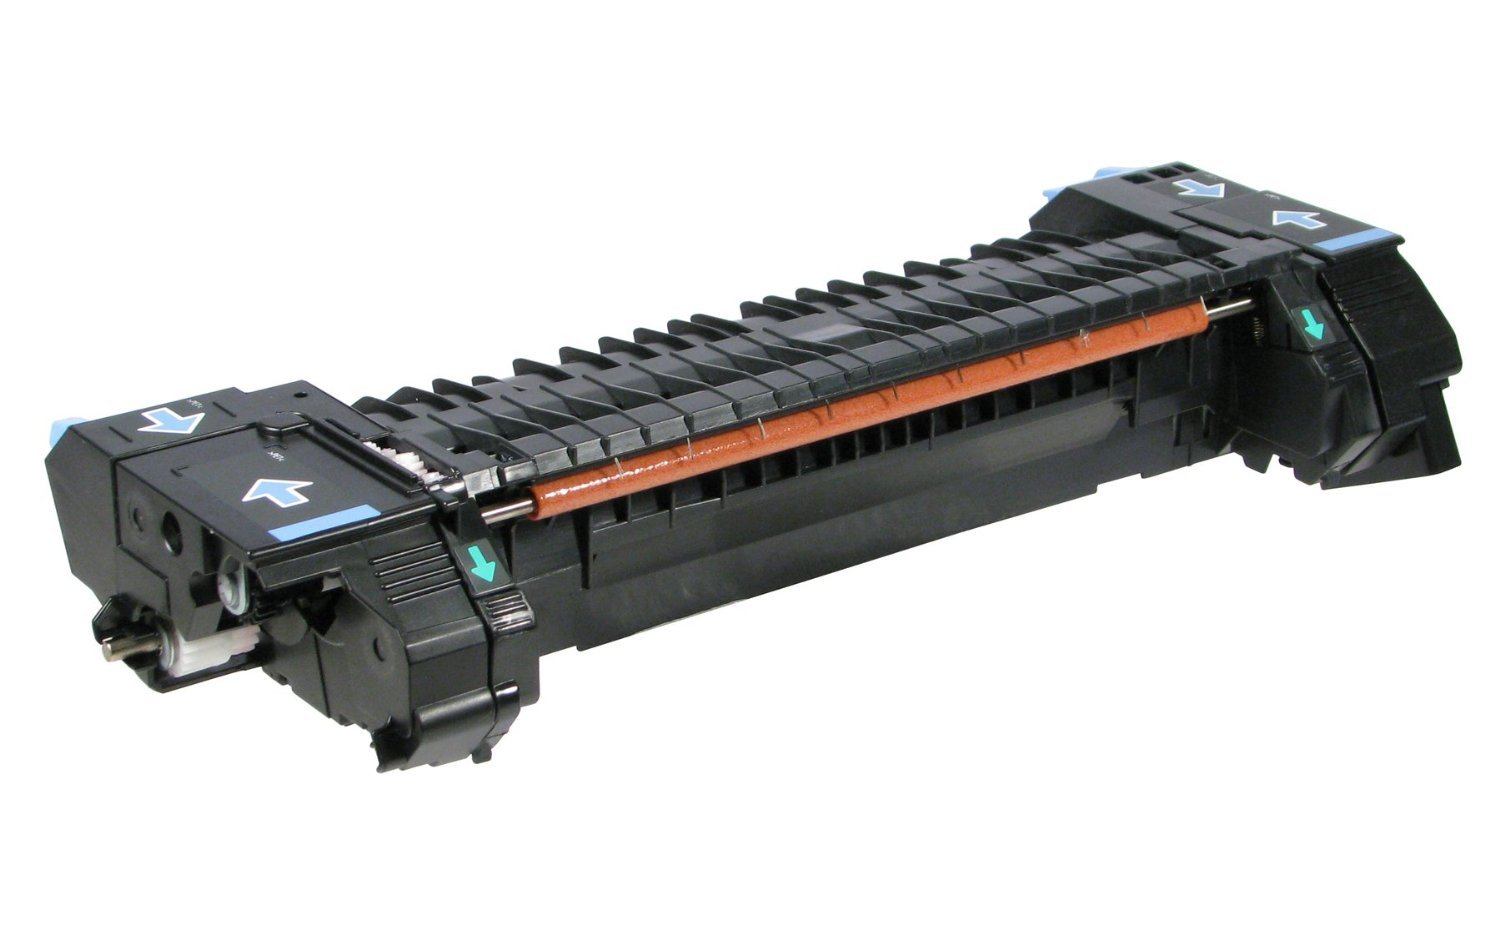 Hp Reman Outright Fuser Assy Refurbished Oem Equivalent: Rm1-2763 Hewlett Packard RM1-2763-020-REF